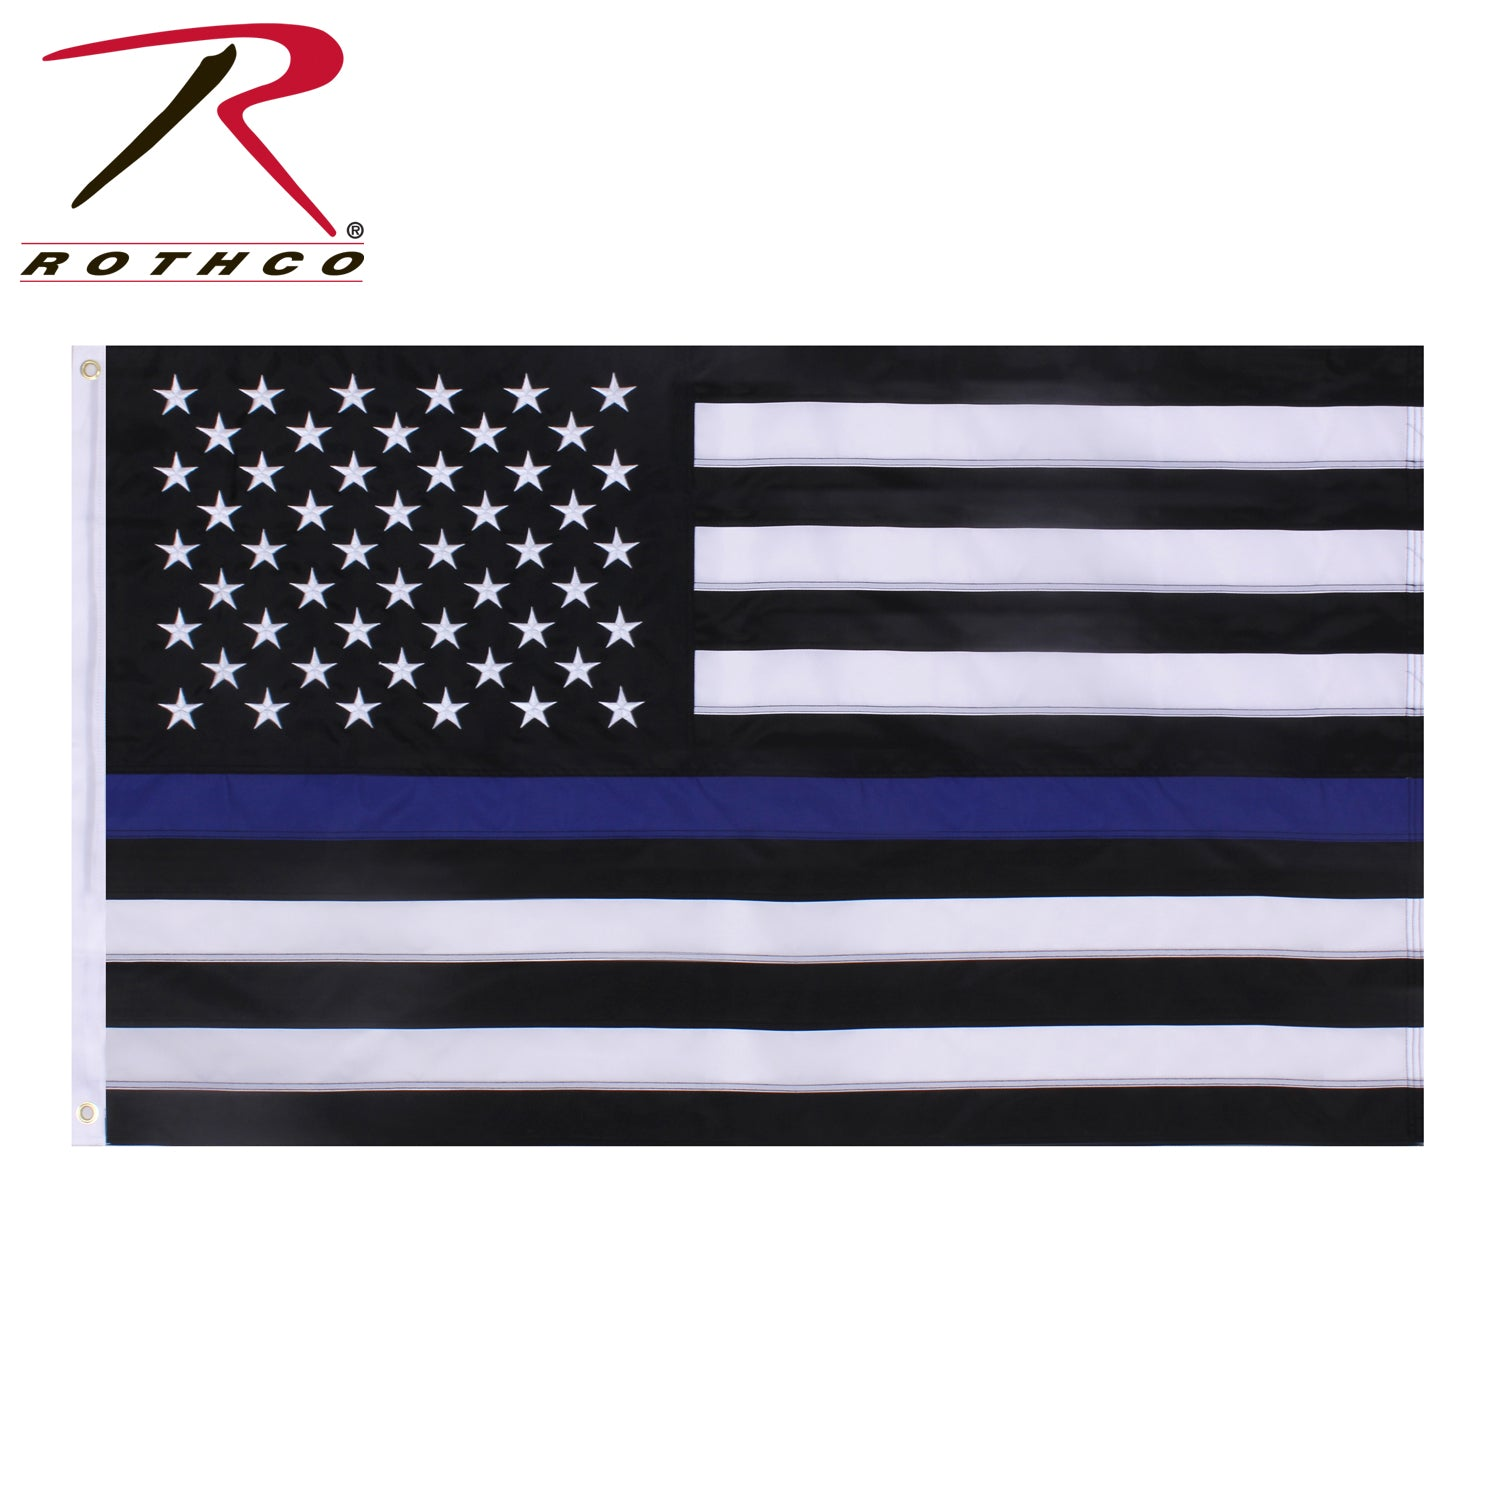 Rothco Deluxe Thin Blue Line Flag 3x5 - red-diamond-uniform-police-supply